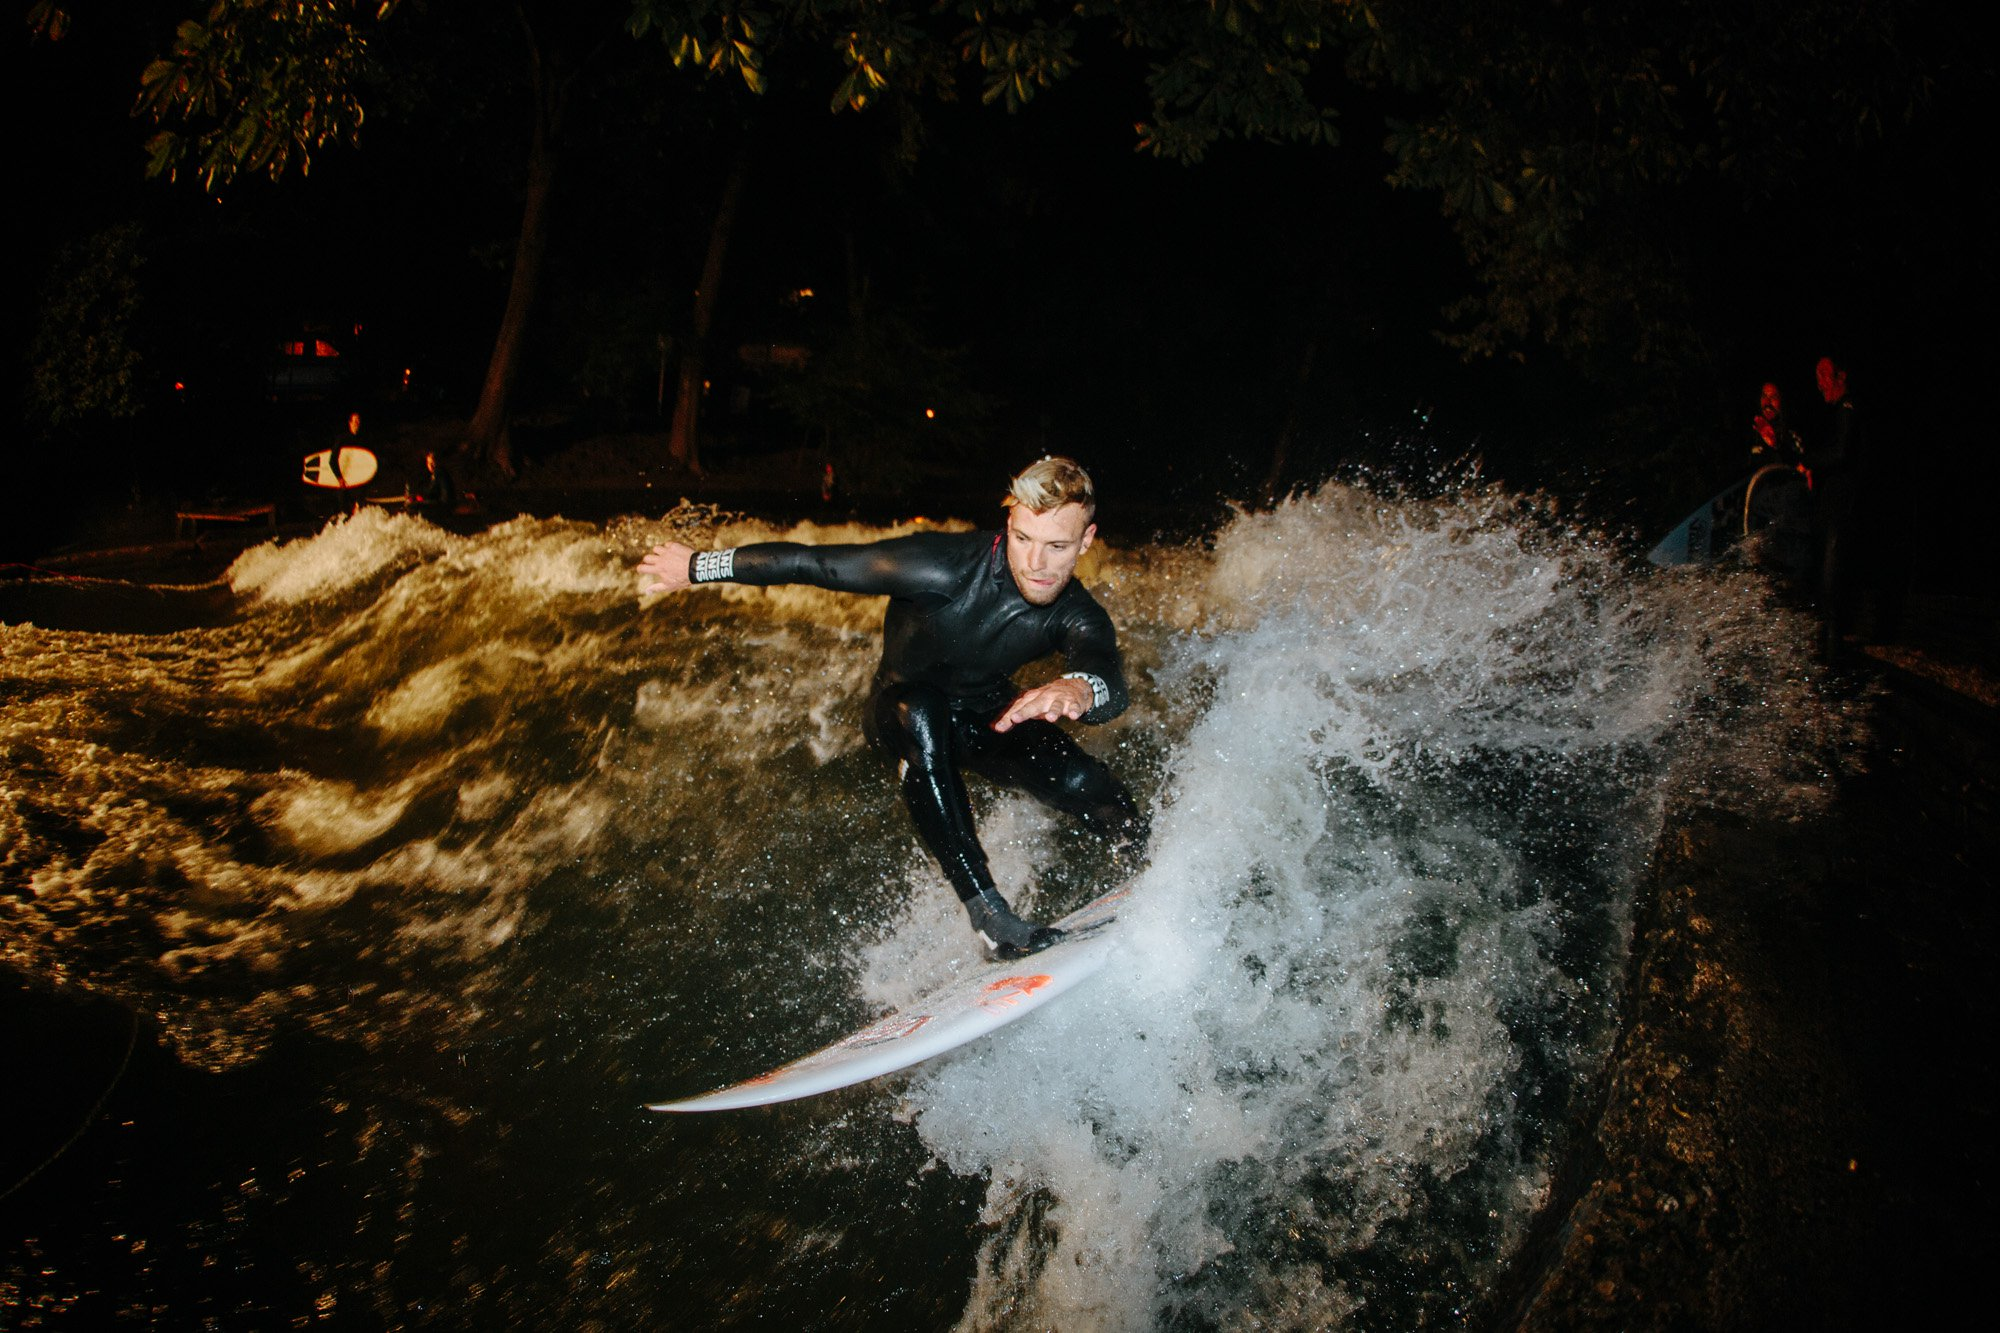 Tanner Gudauskas , and a not so classic German night-out.